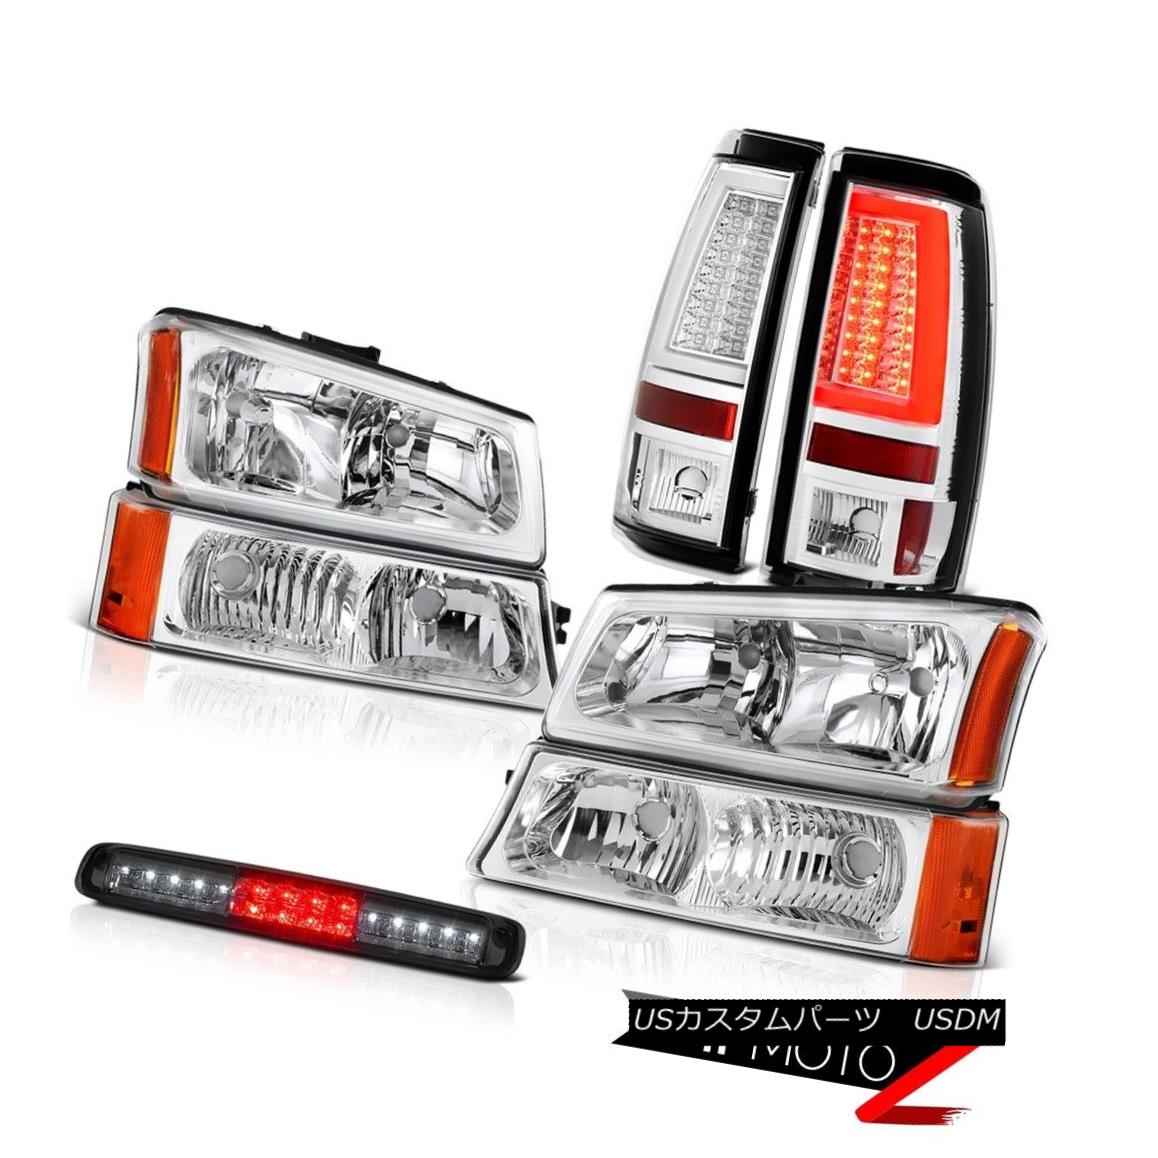 ヘッドライト 03 04 05 06 Chevy Silverado Taillamps Headlamps Roof Cargo Lamp